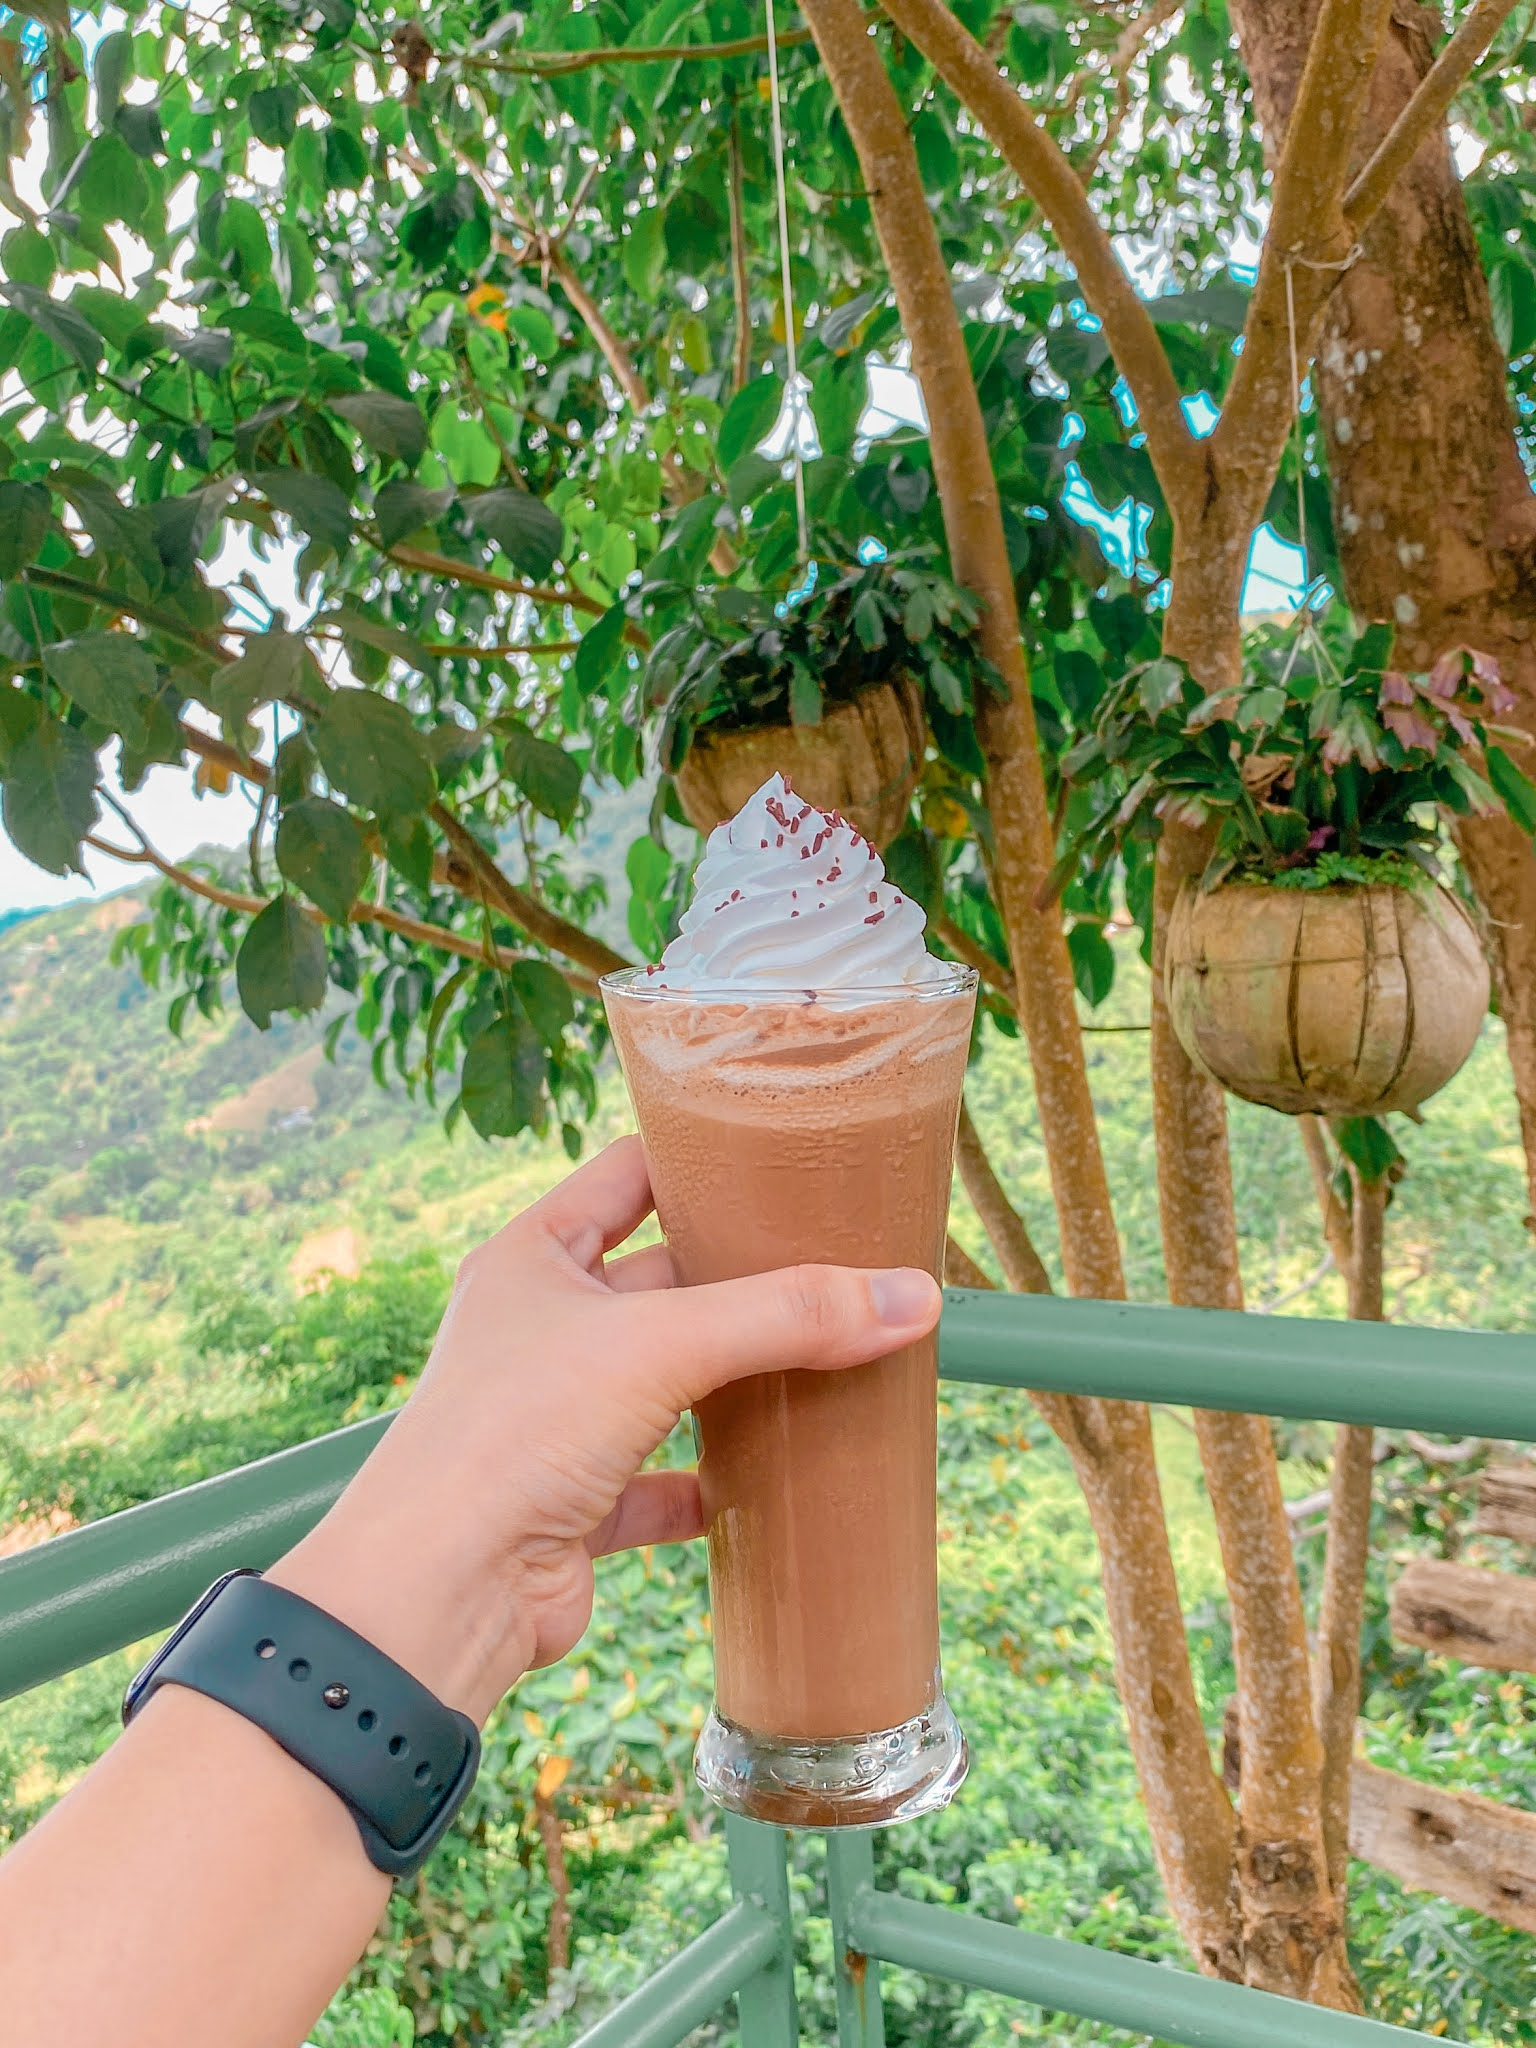 Lakeview Le Jardin: The Newest Must-Visit Garden and Restaurant  Up in the Mountains